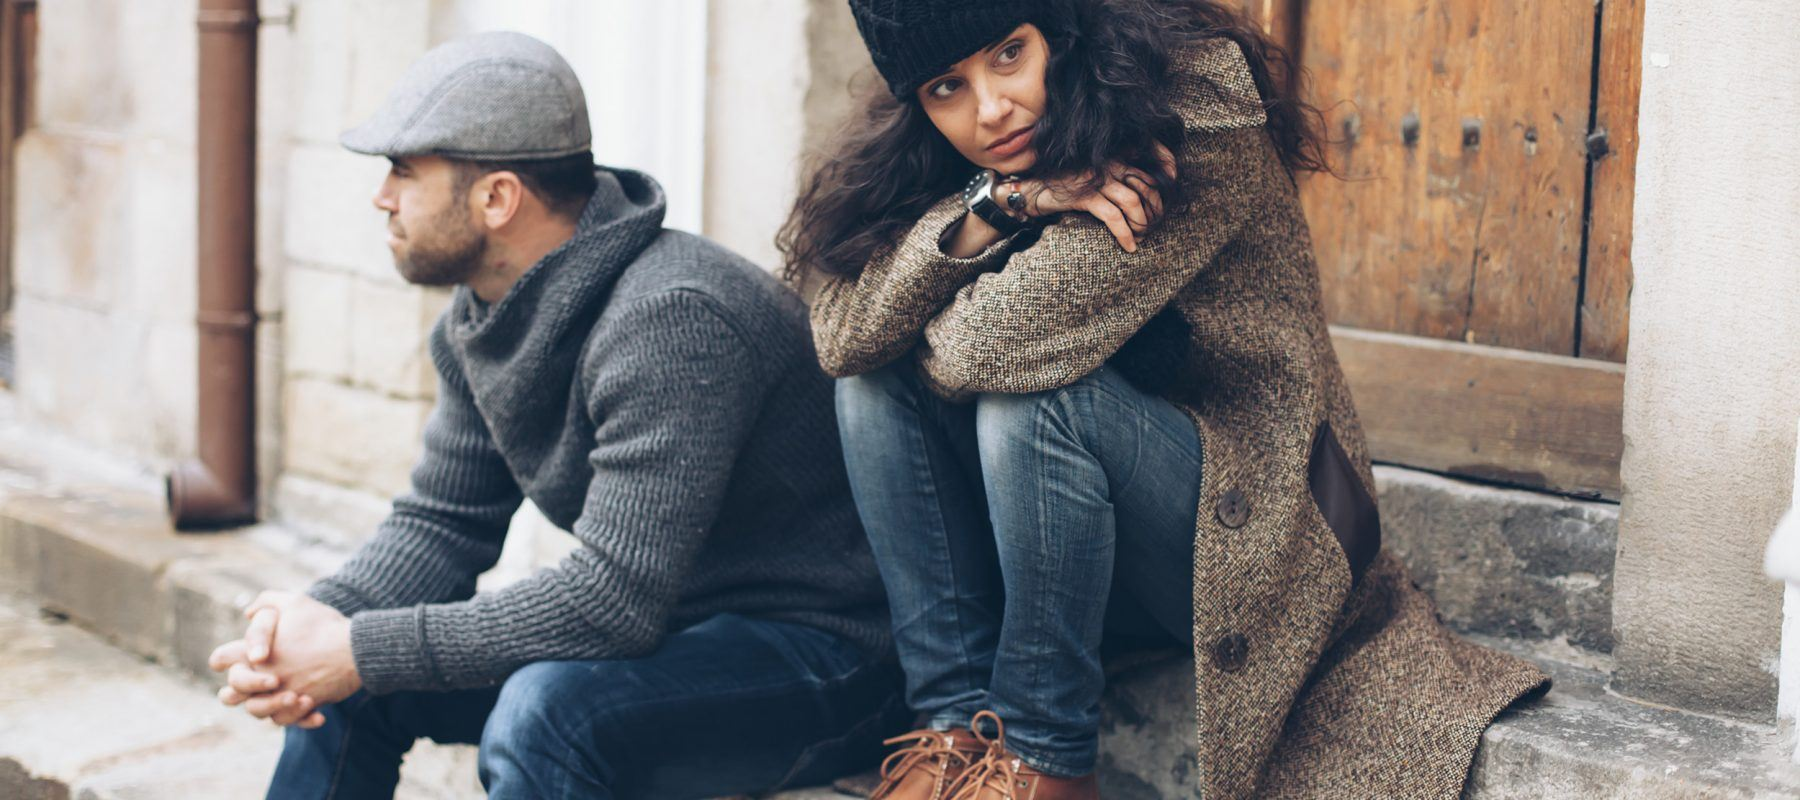 Is it Time to Go to Couples Counseling?